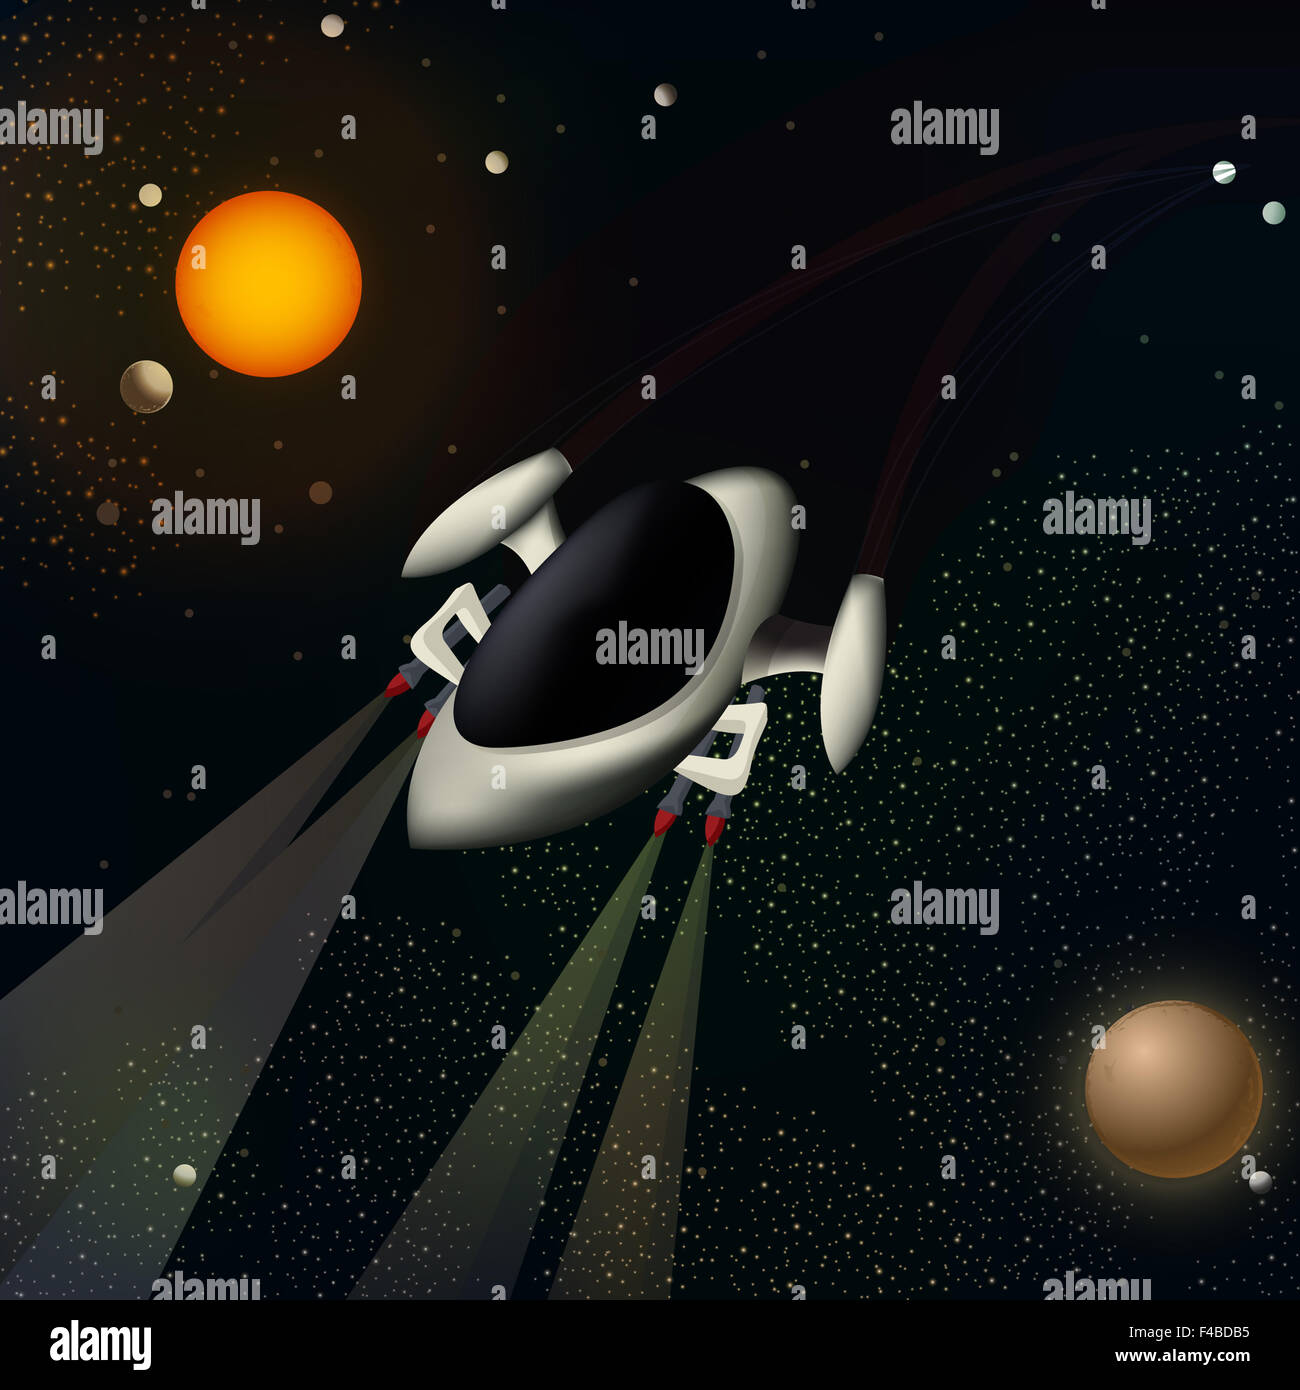 Illustration of a spacecraft - Stock Image